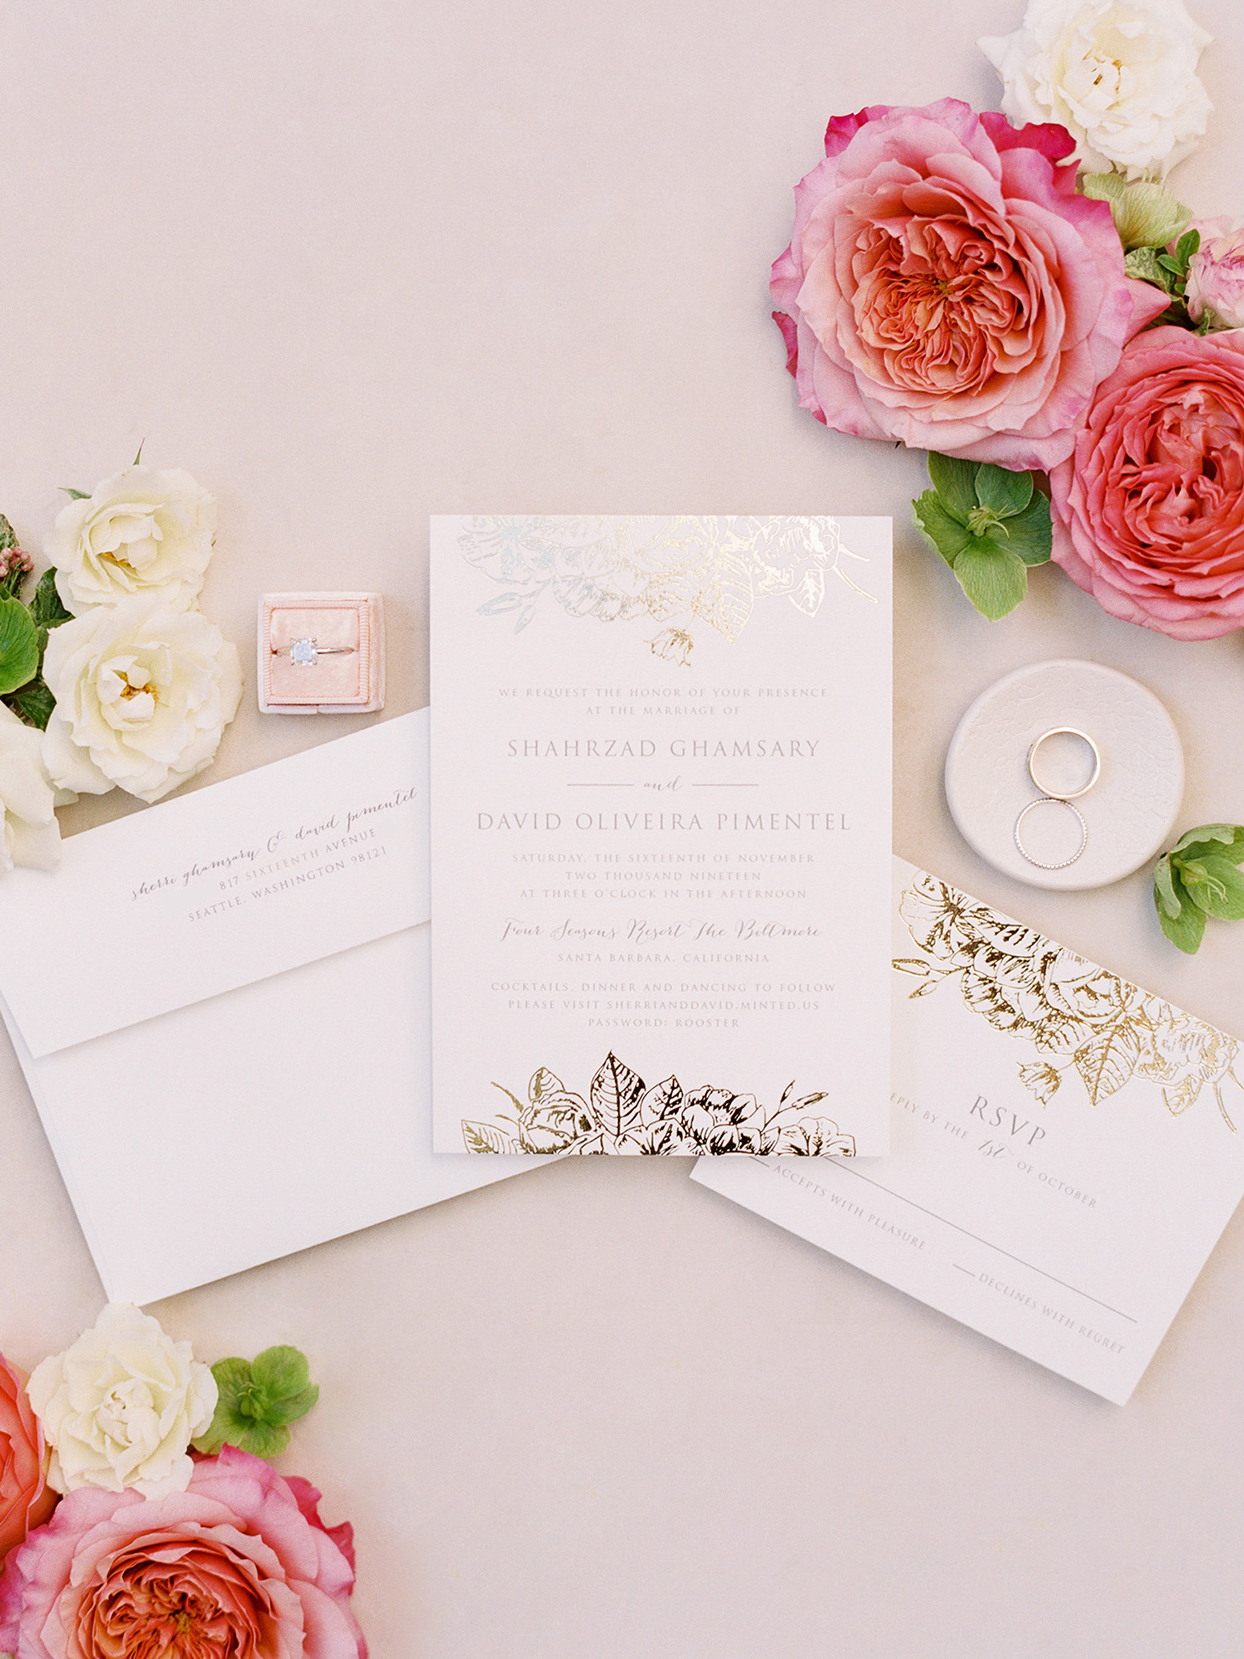 white wedding invites with shiny gold and silver decoration and pink flowers